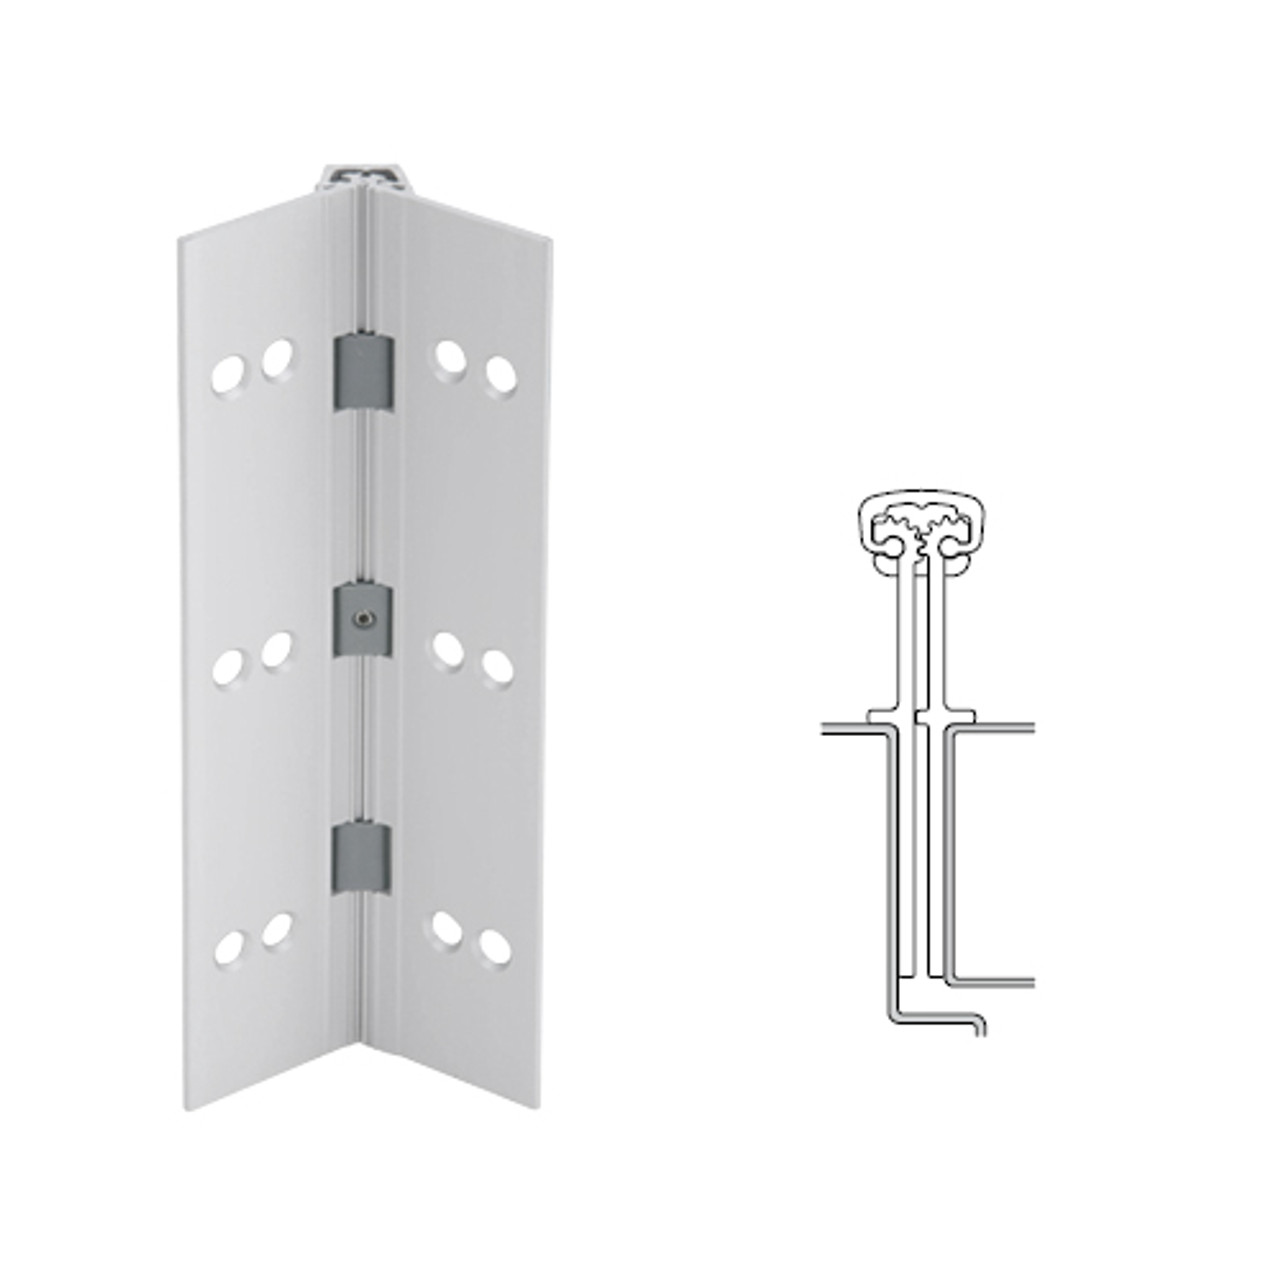 040XY-US28-83-WD IVES Full Mortise Continuous Geared Hinges with Wood Screws in Satin Aluminum